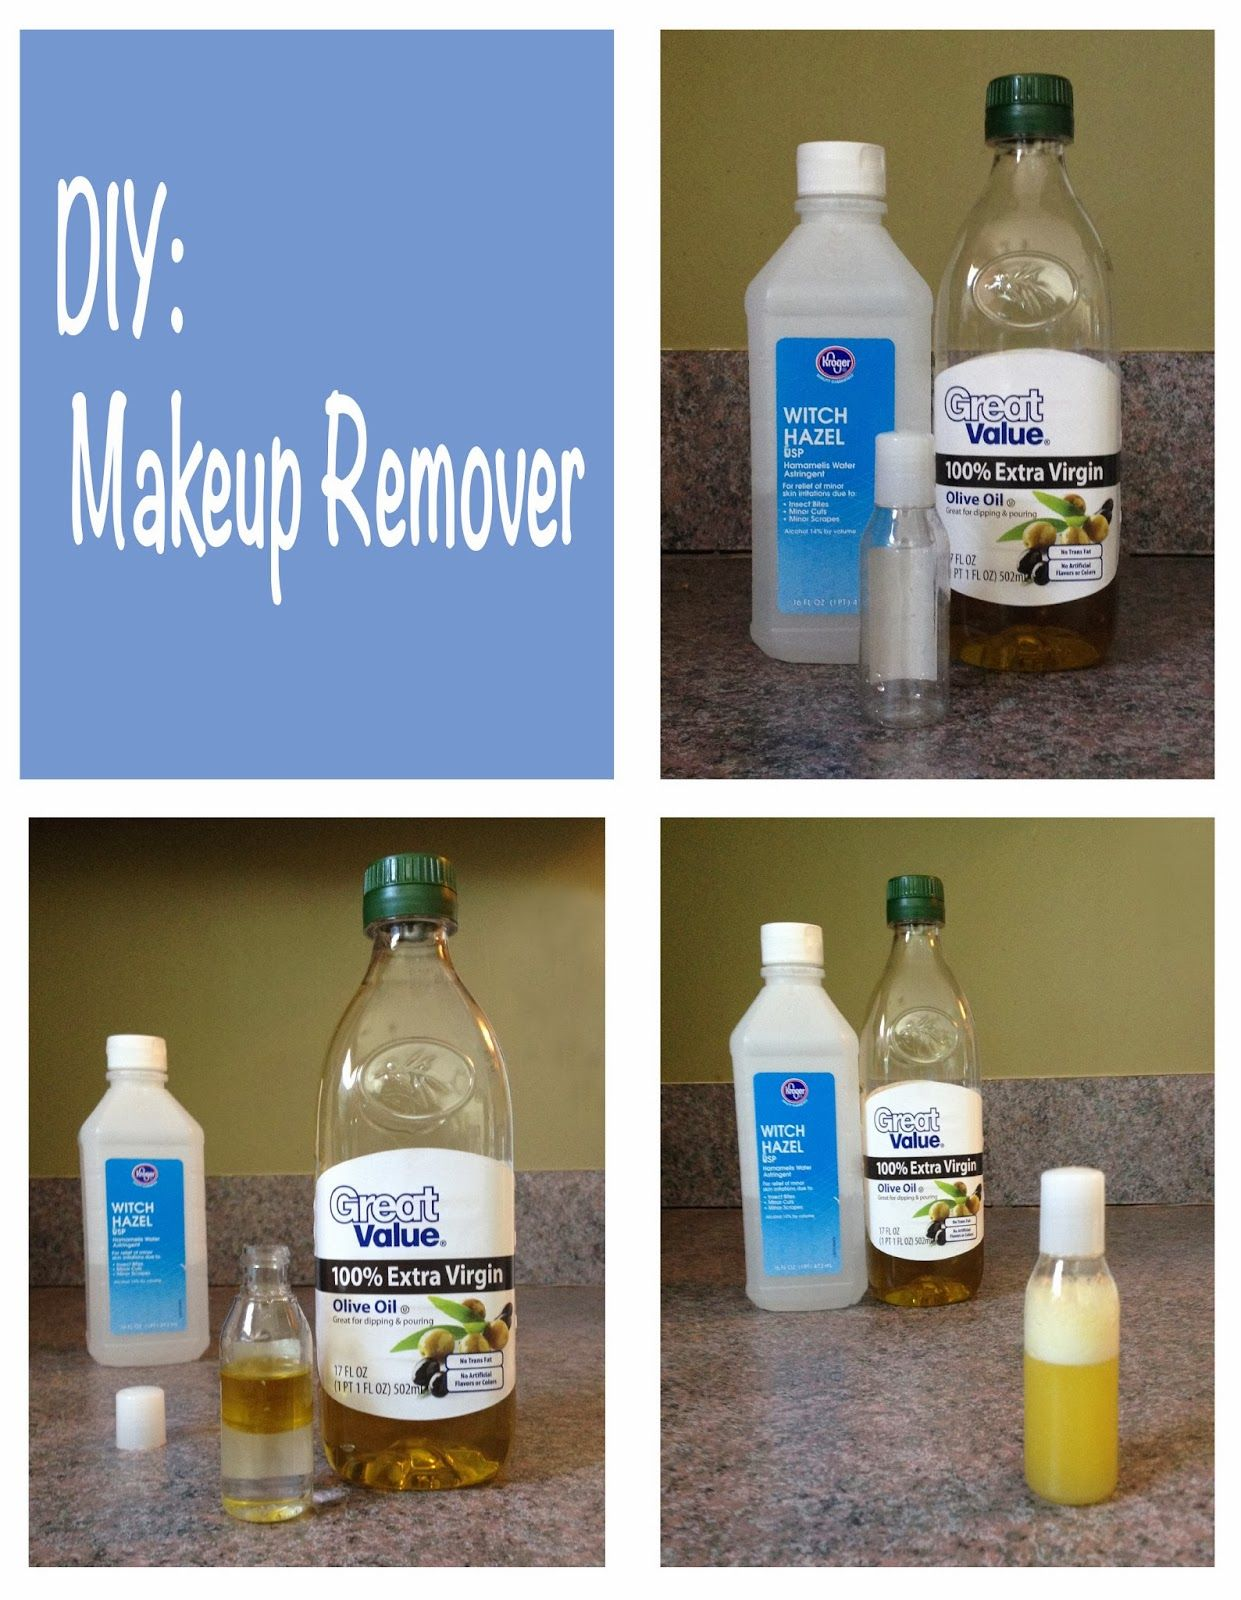 Homemade makeup remover with Olive Oil and Witch hazel